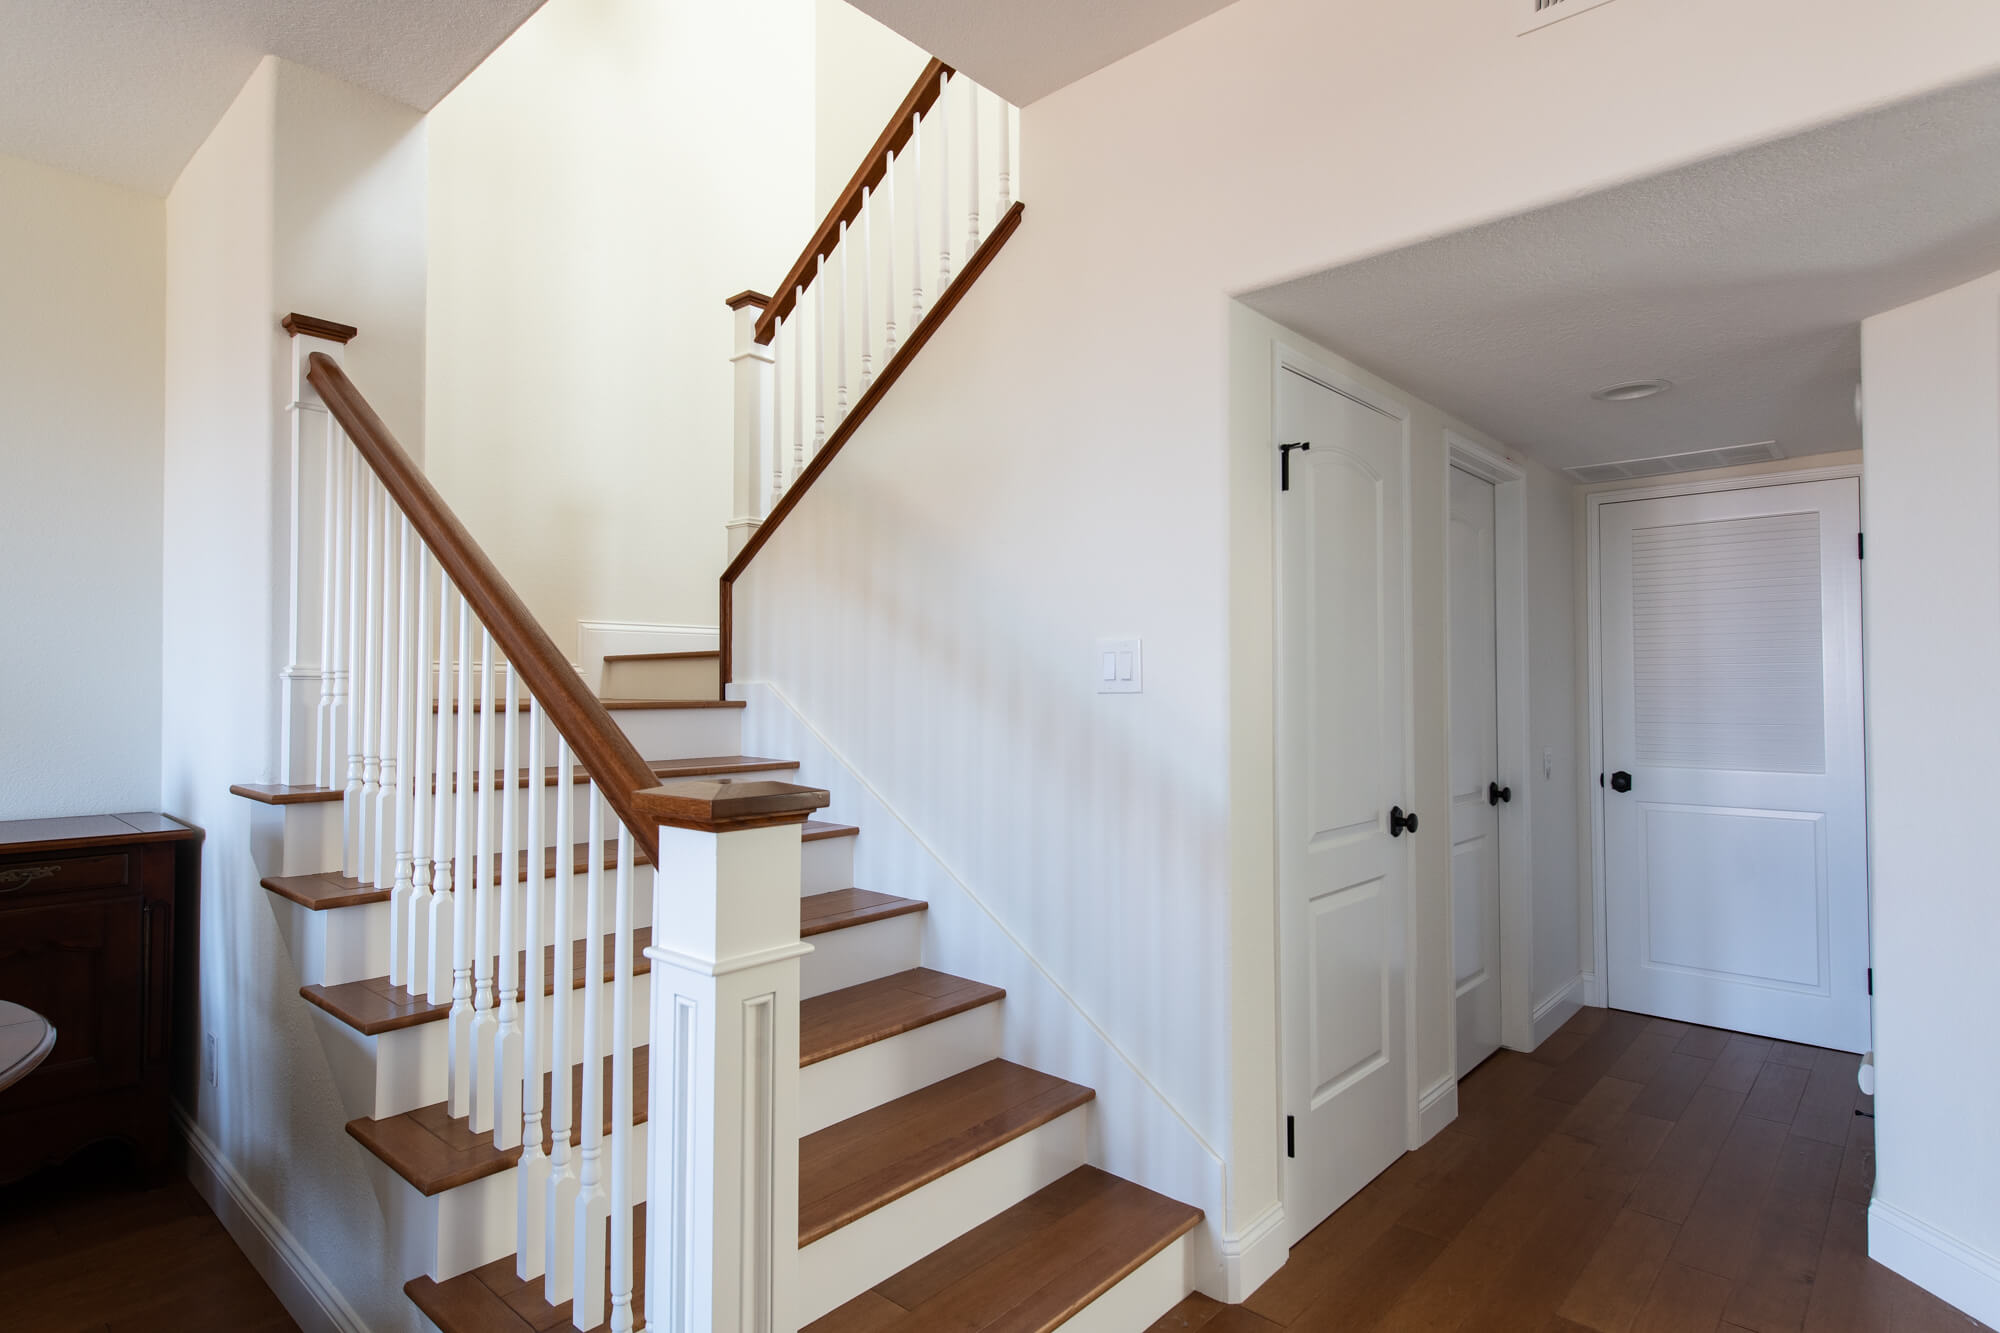 a staircase with brown treads and handrail, and a white wooden baluster